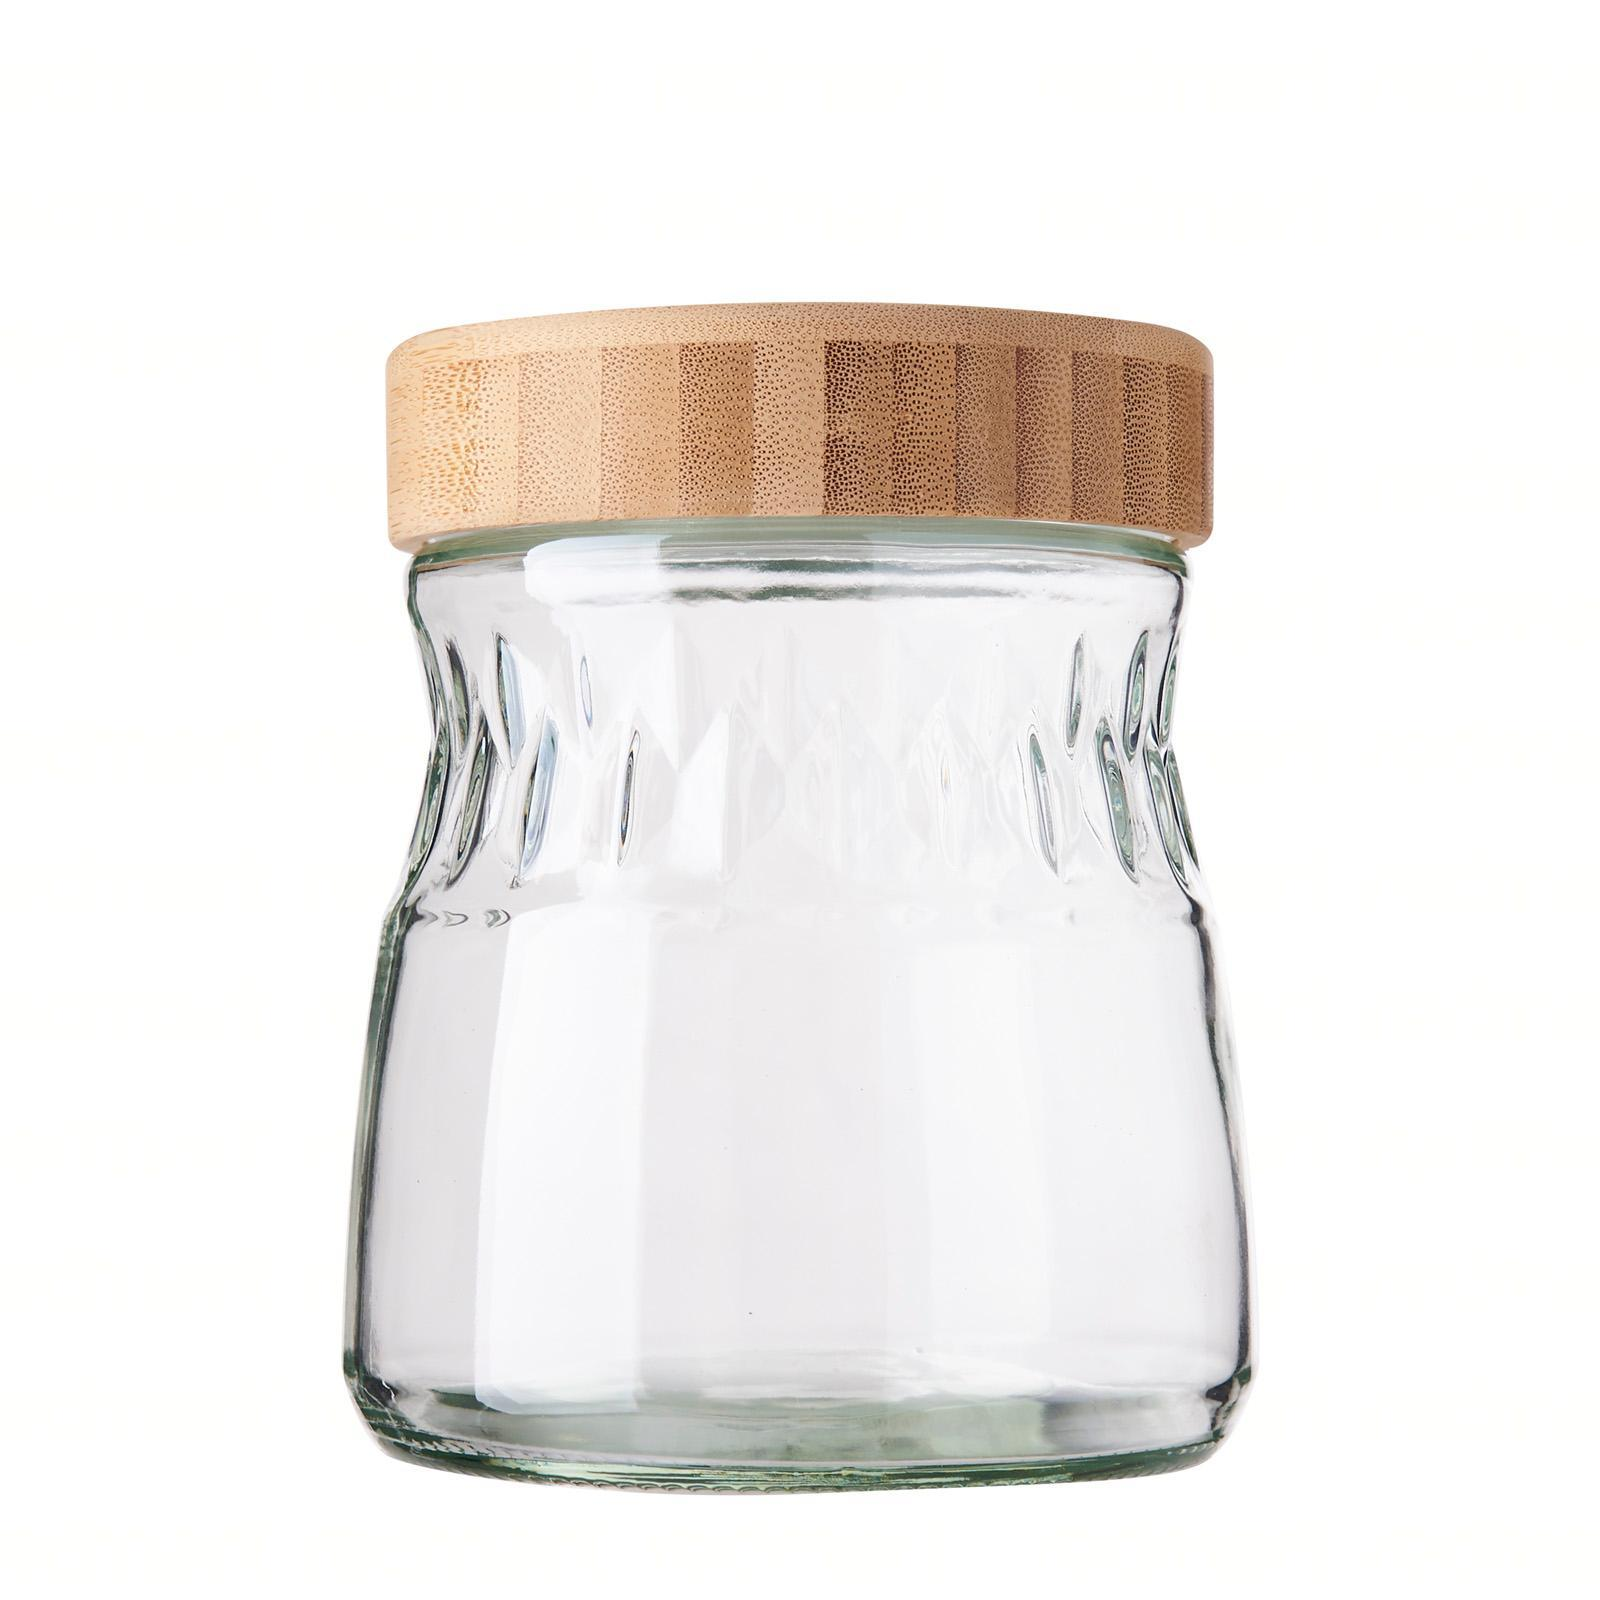 Elemental Kitchen Glass Storage Jar With Bamboo Lid -1000ML